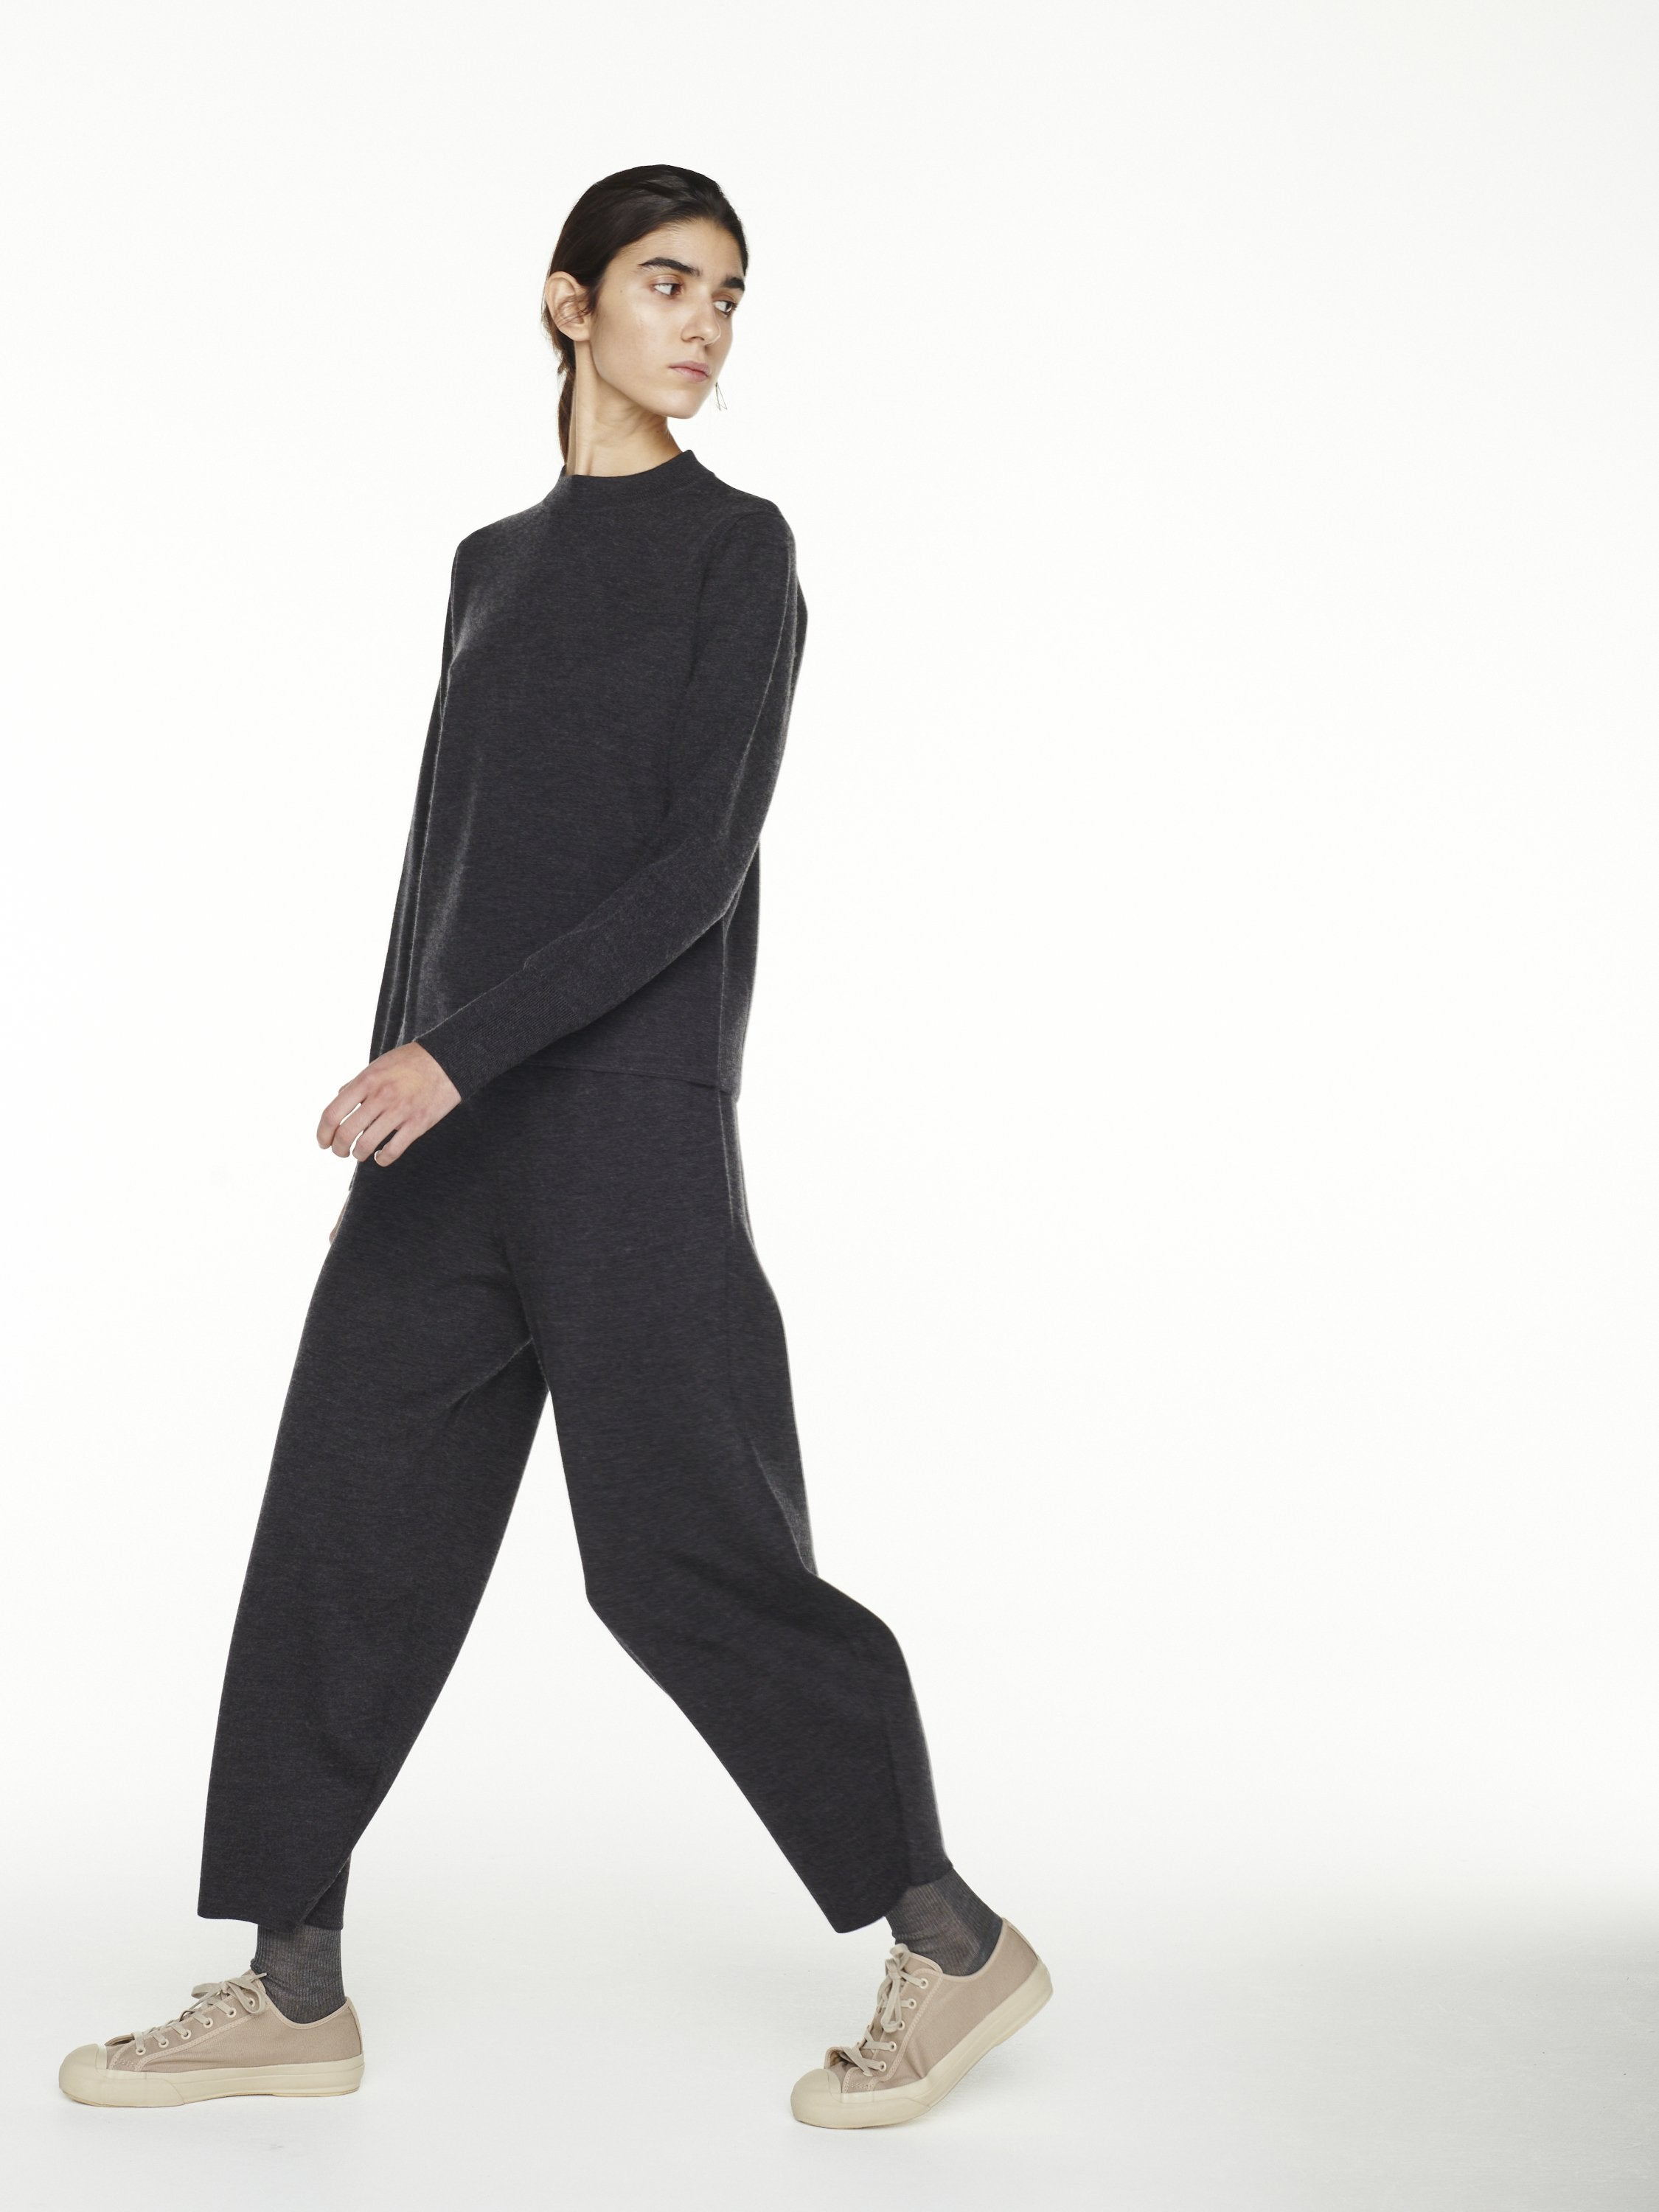 Moura Sculpted Wool Cashmere Trouser - Graphite